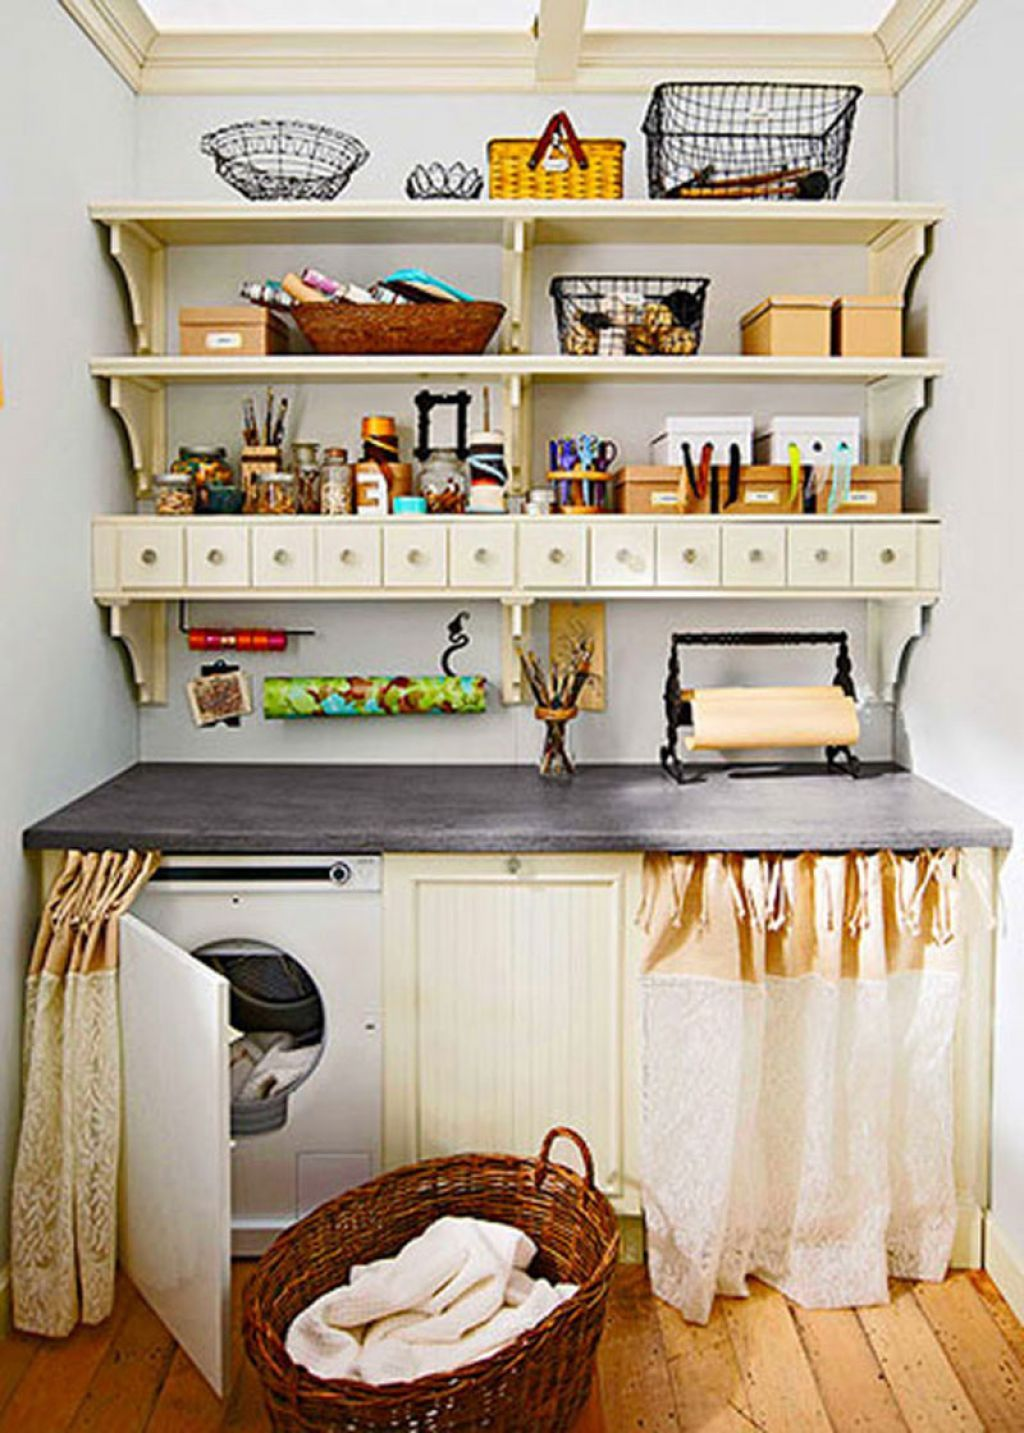 kitchen storage ideas loved by that guy van lines thatguyvanlines com small room storage on kitchen organization small space id=38562